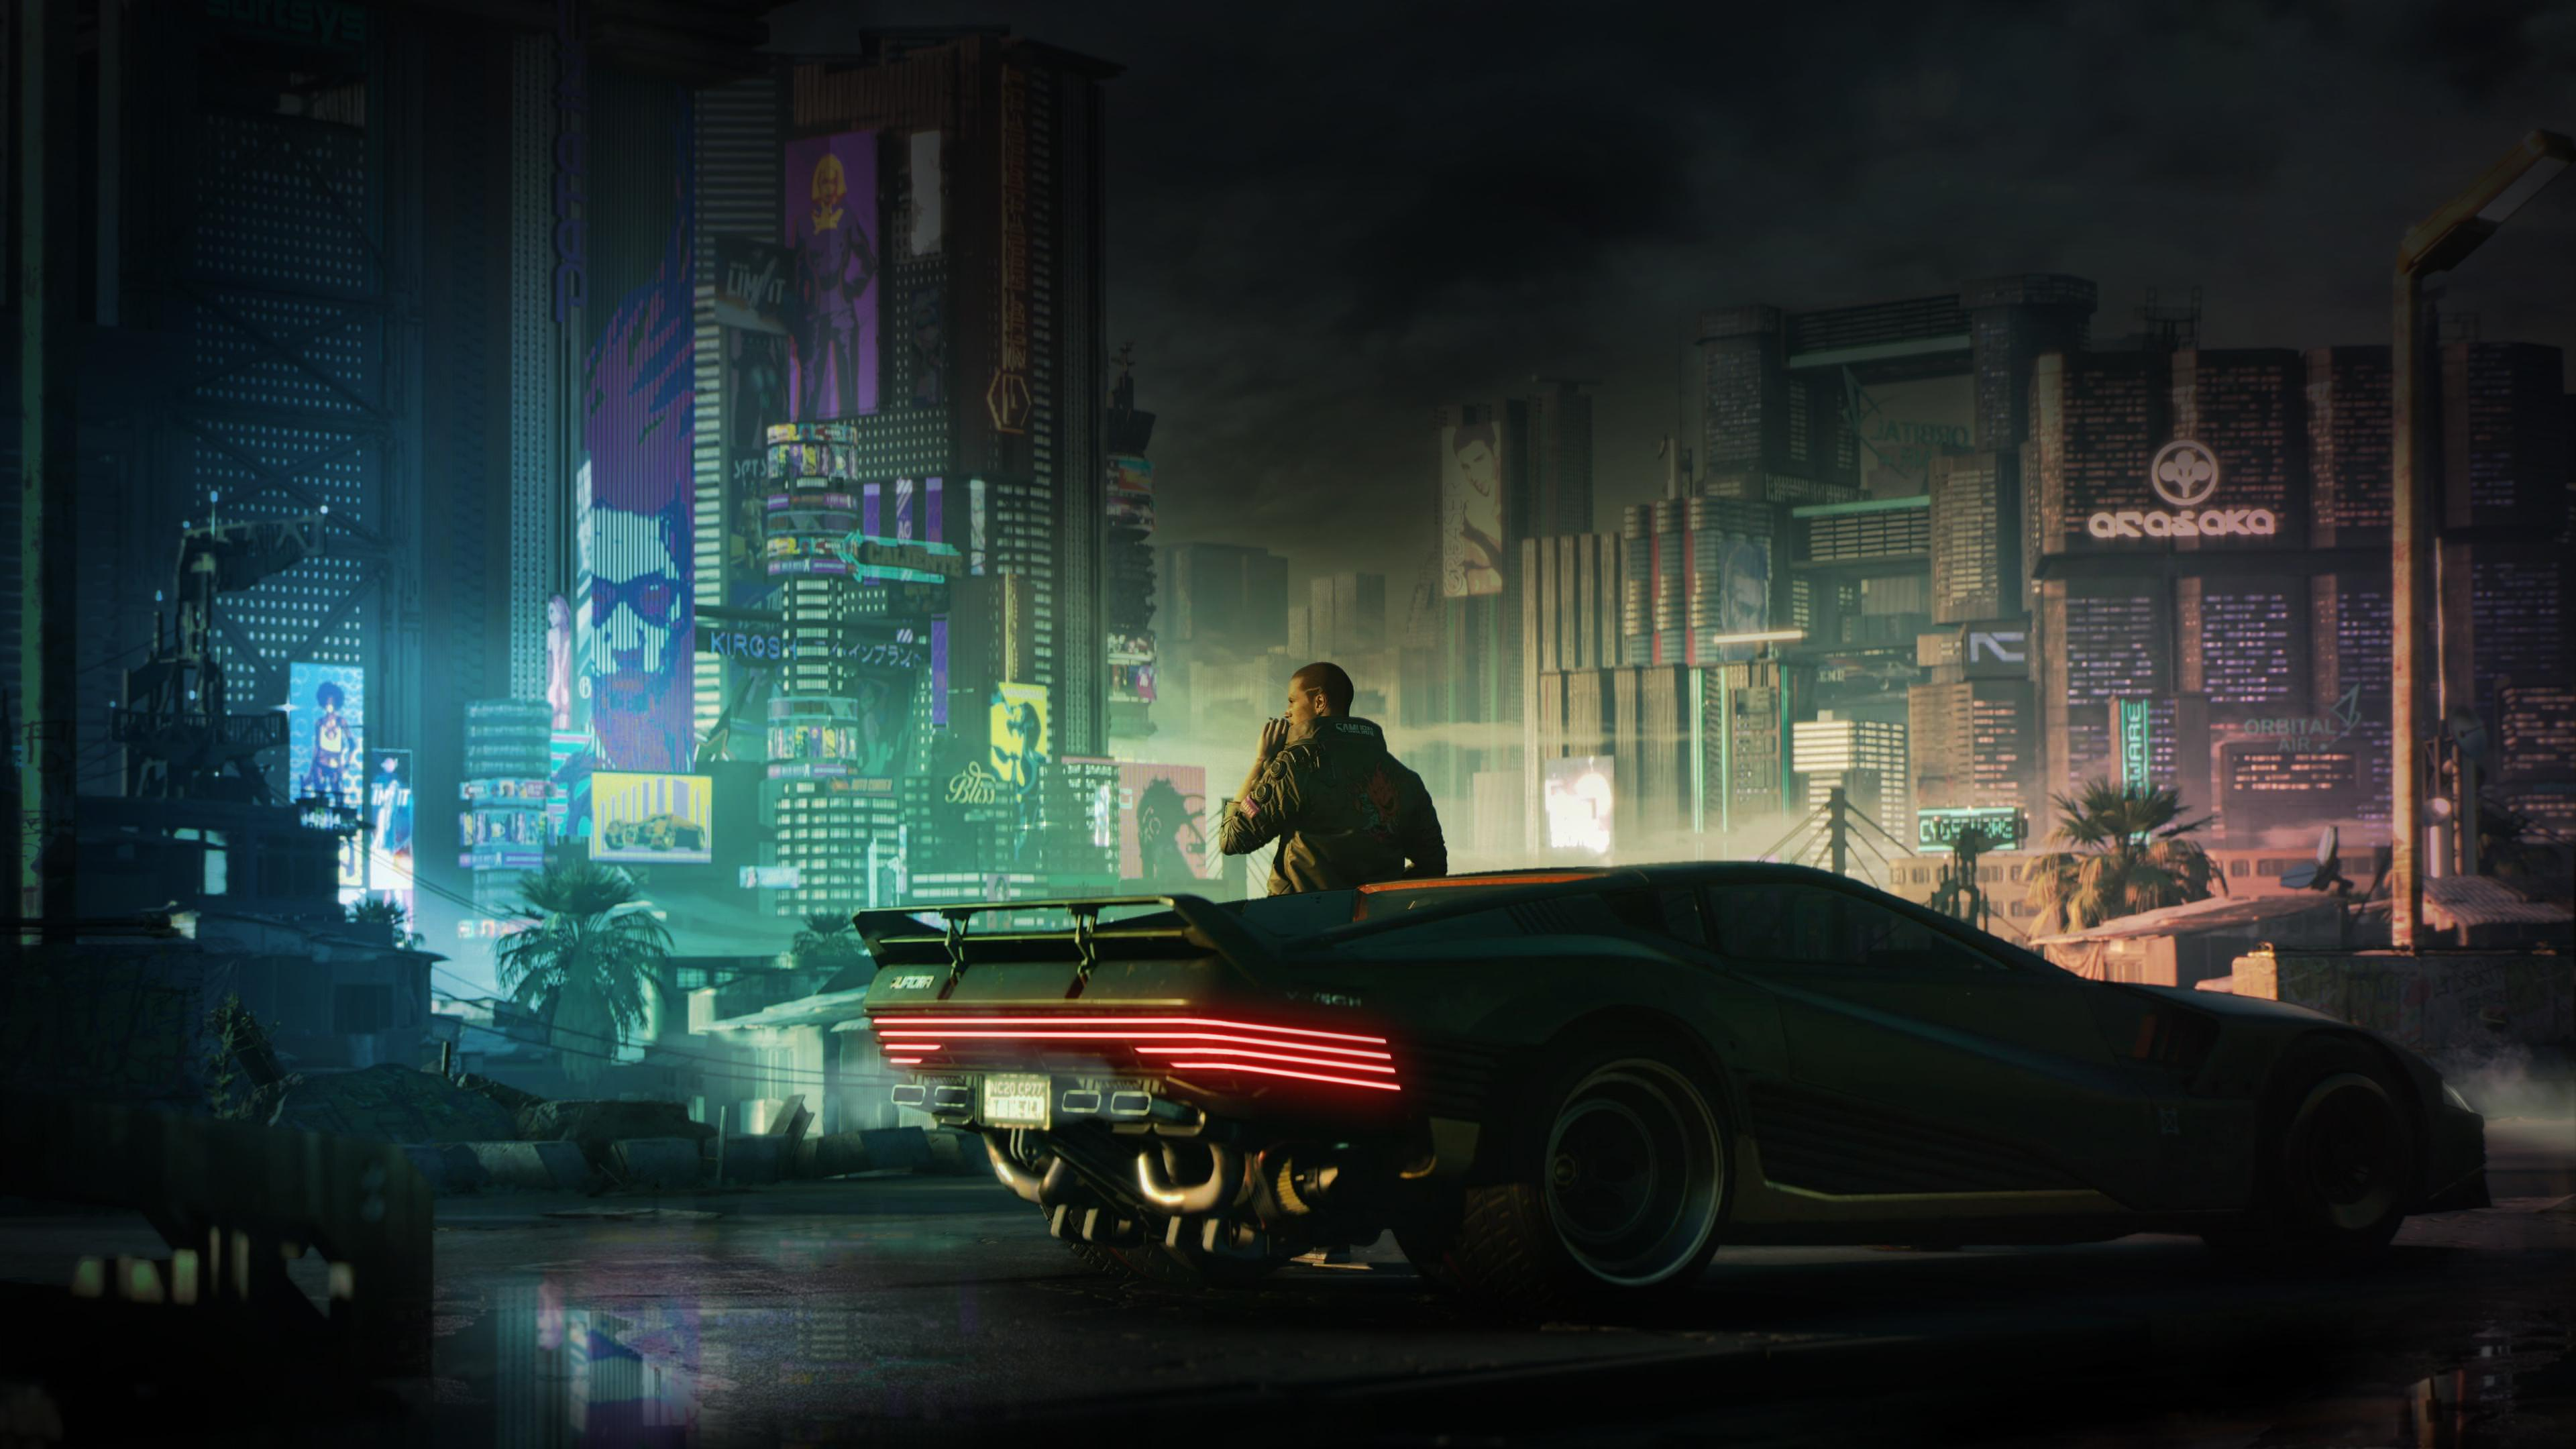 Cyberpunk 2077 4k Wallpapers Top Free Cyberpunk 2077 4k Backgrounds Wallpaperaccess